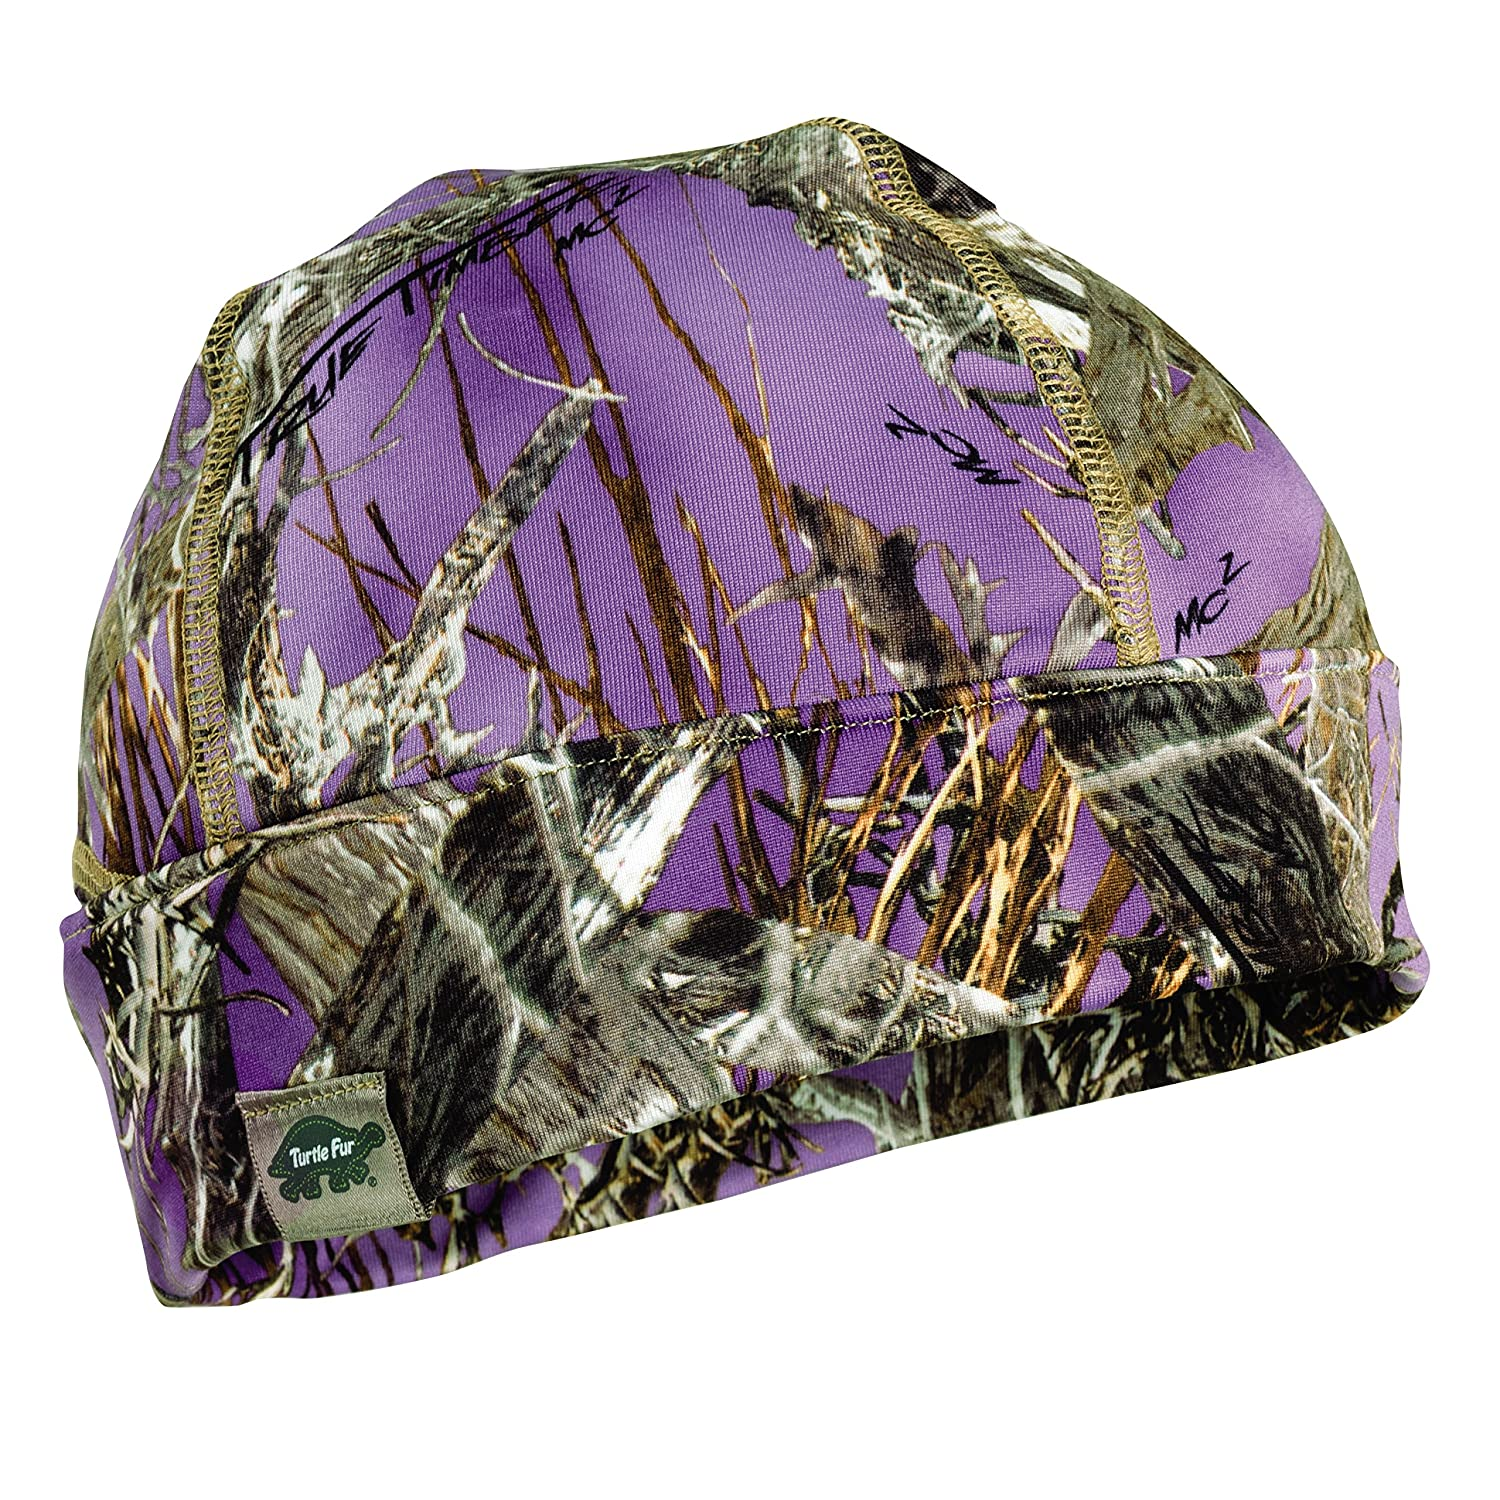 e8ed125f1c92f Amazon.com   Turtle Fur Hunting Ponytail Conquest Lightweight Camo Ponytail  Beanie Mossy Oak Break-Up Country   Sports   Outdoors